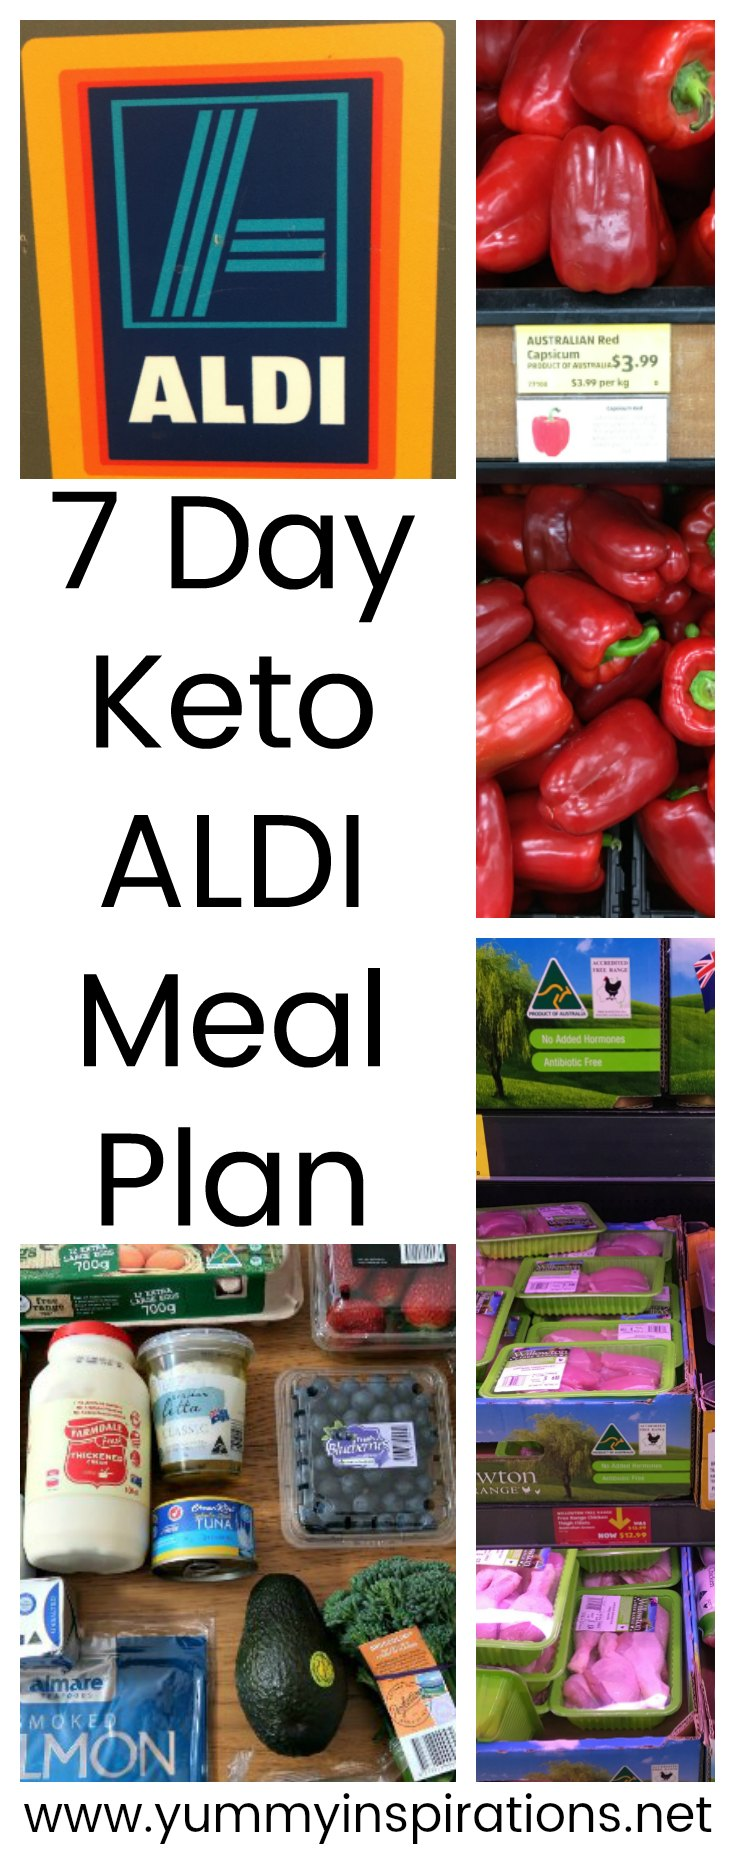 7 Day Keto Aldi Meal Plan Low Carb Ketogenic Diet Meal For